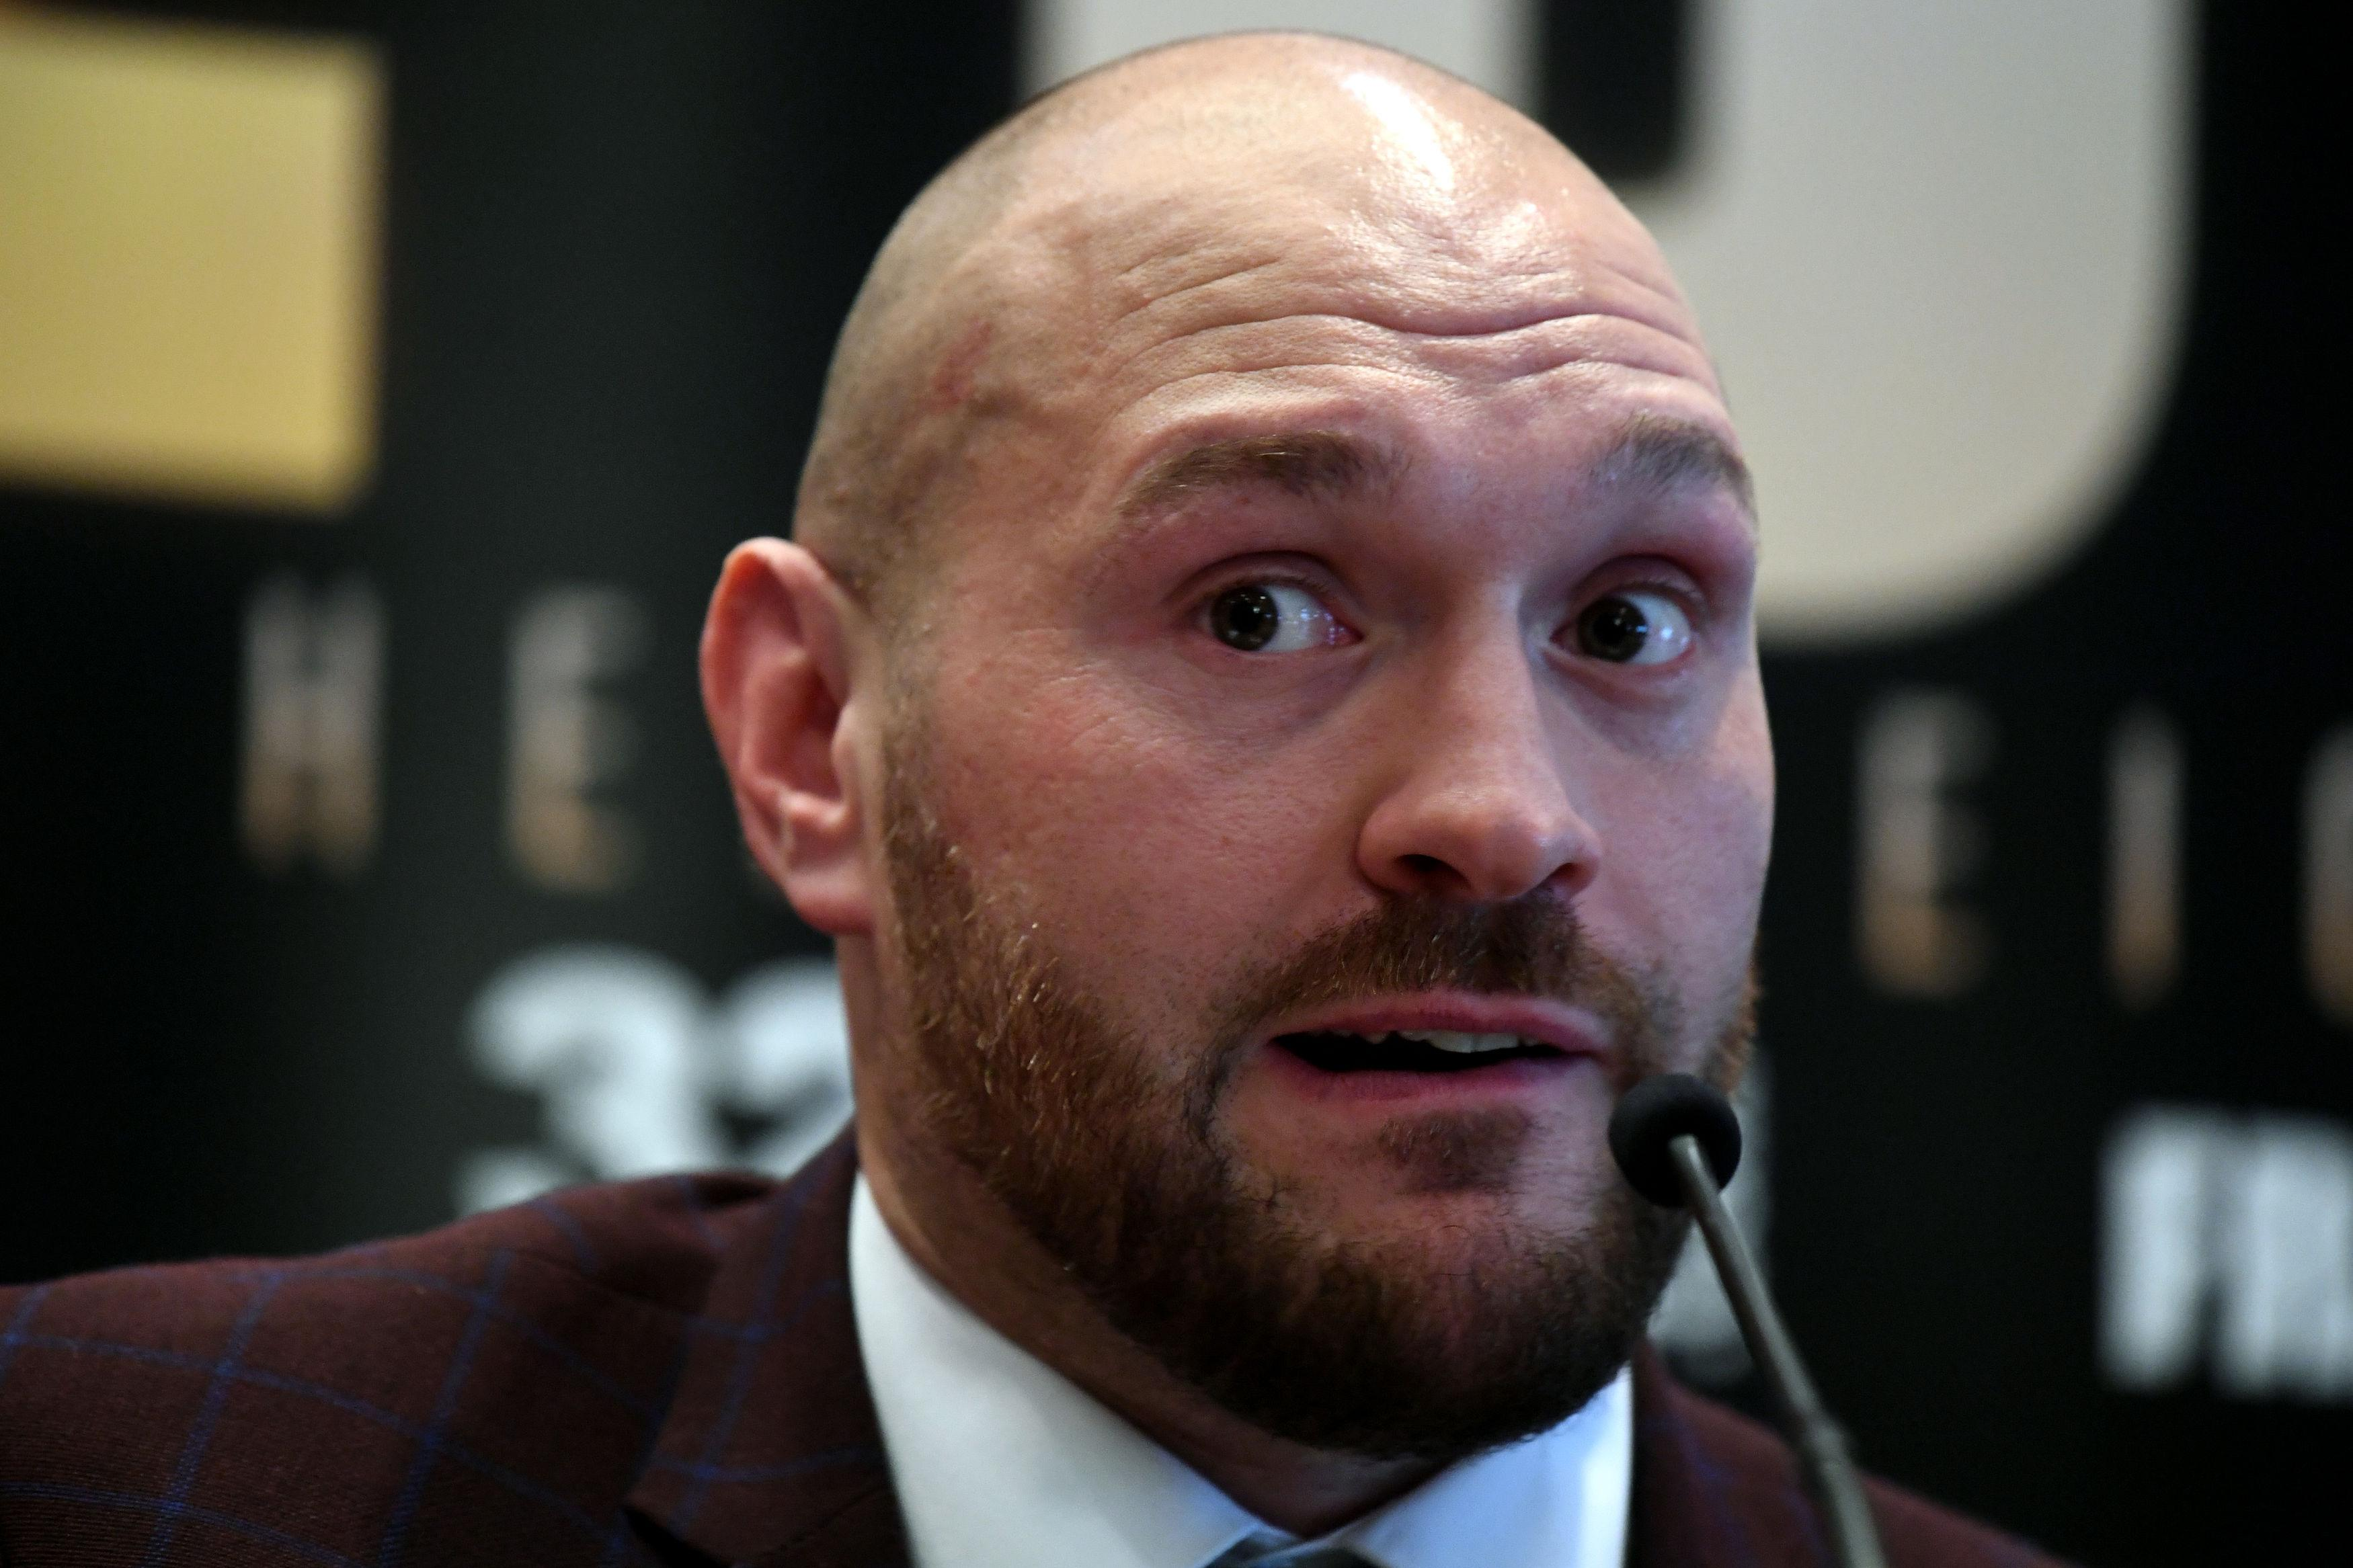 Tyson Fury is making his comeback on June 9